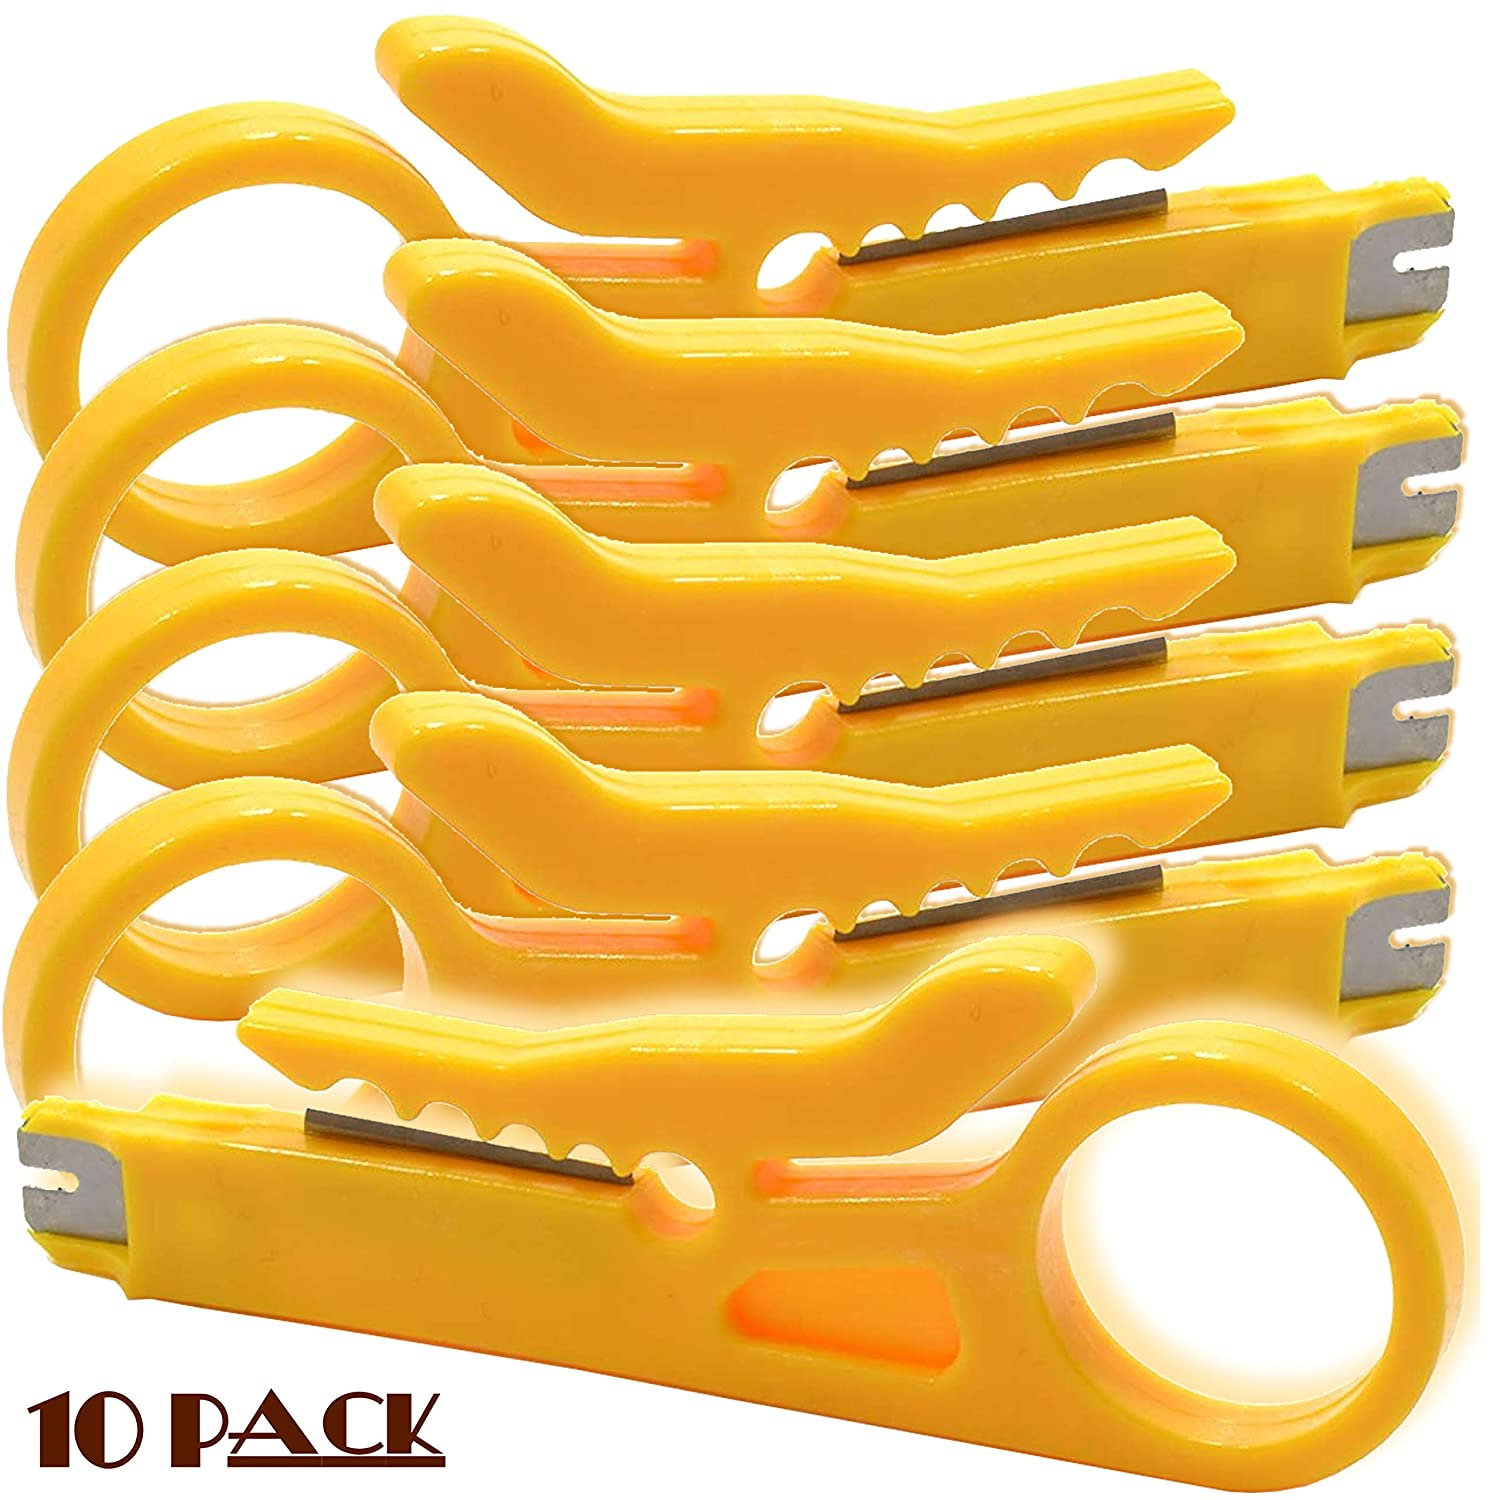 1 Pack Convenient Pocket Sized IDC Insertion Tool and Wire Stripper